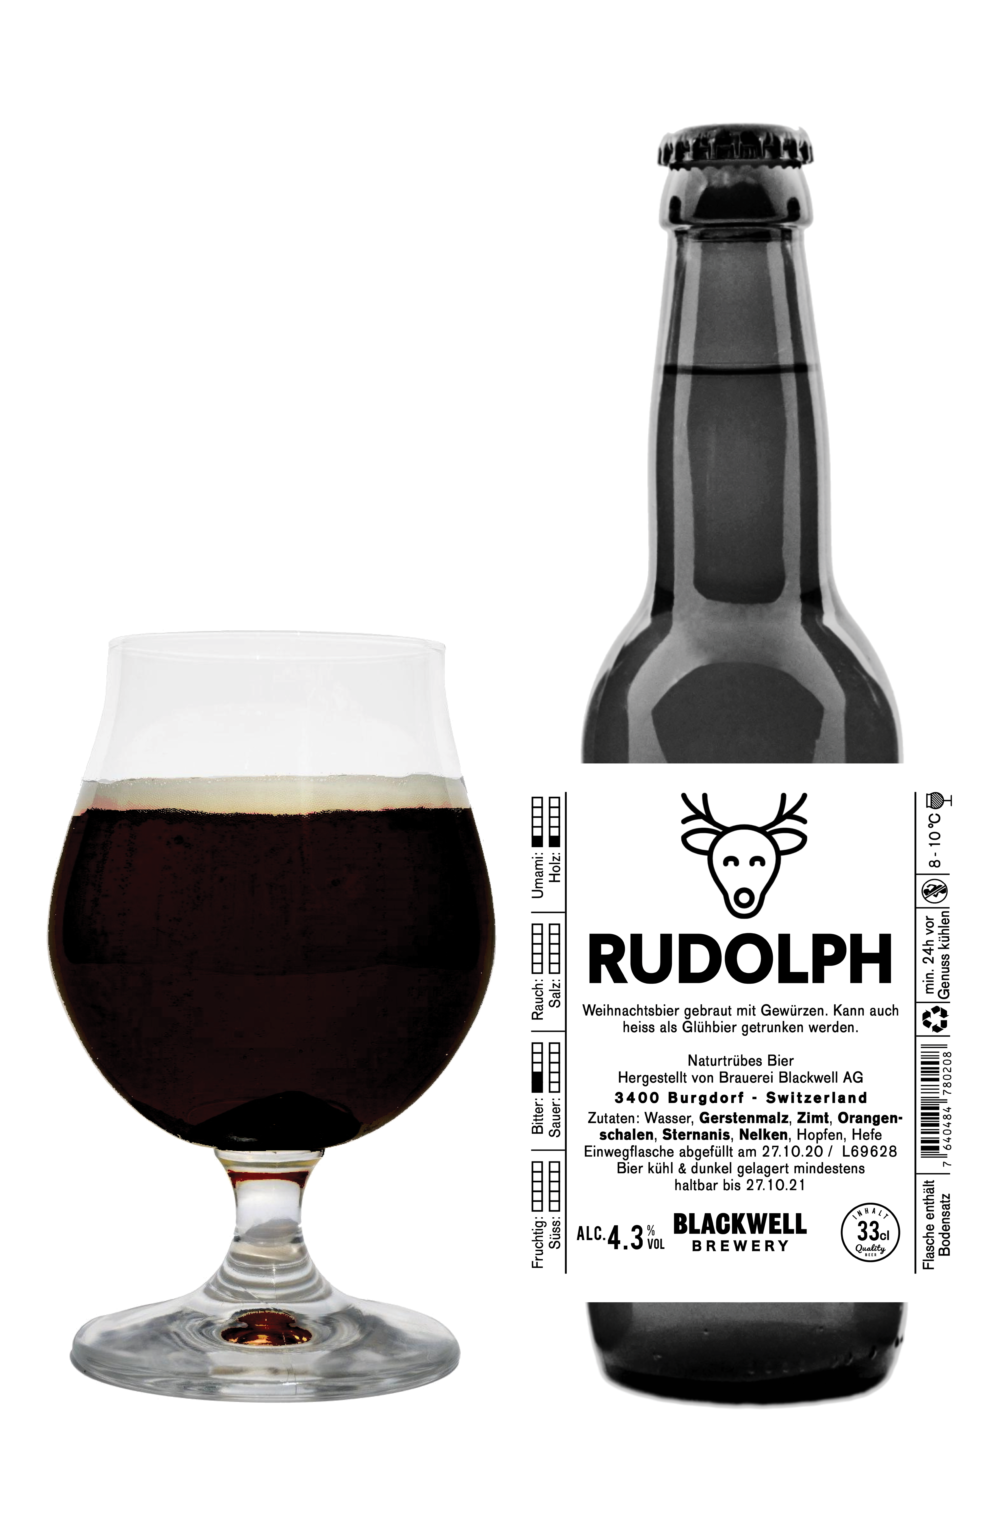 https://blackwellbrewery.ch/wp-content/uploads/2020/11/Rudolph-e1614258121216.png